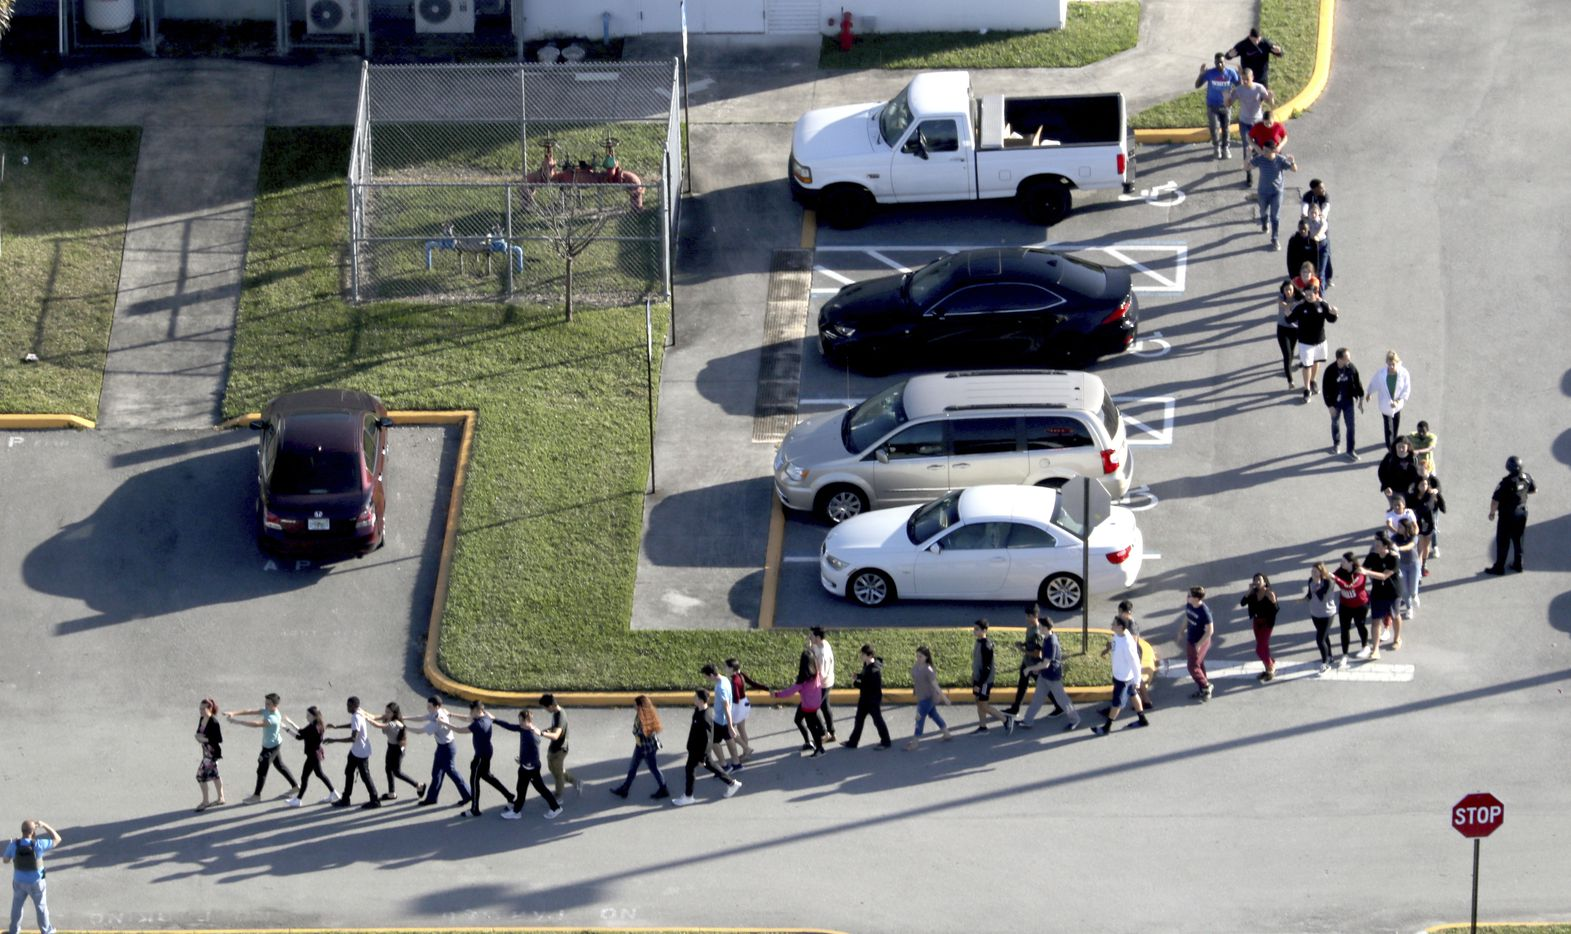 CORRECTS SPELLING TO MARJORY NOT MARJORIE Students are evacuated by police from Marjory Stoneman Douglas High School in Parkland, Fla., on Wednesday, Feb. 14, 2018, after a shooter opened fire on the campus.